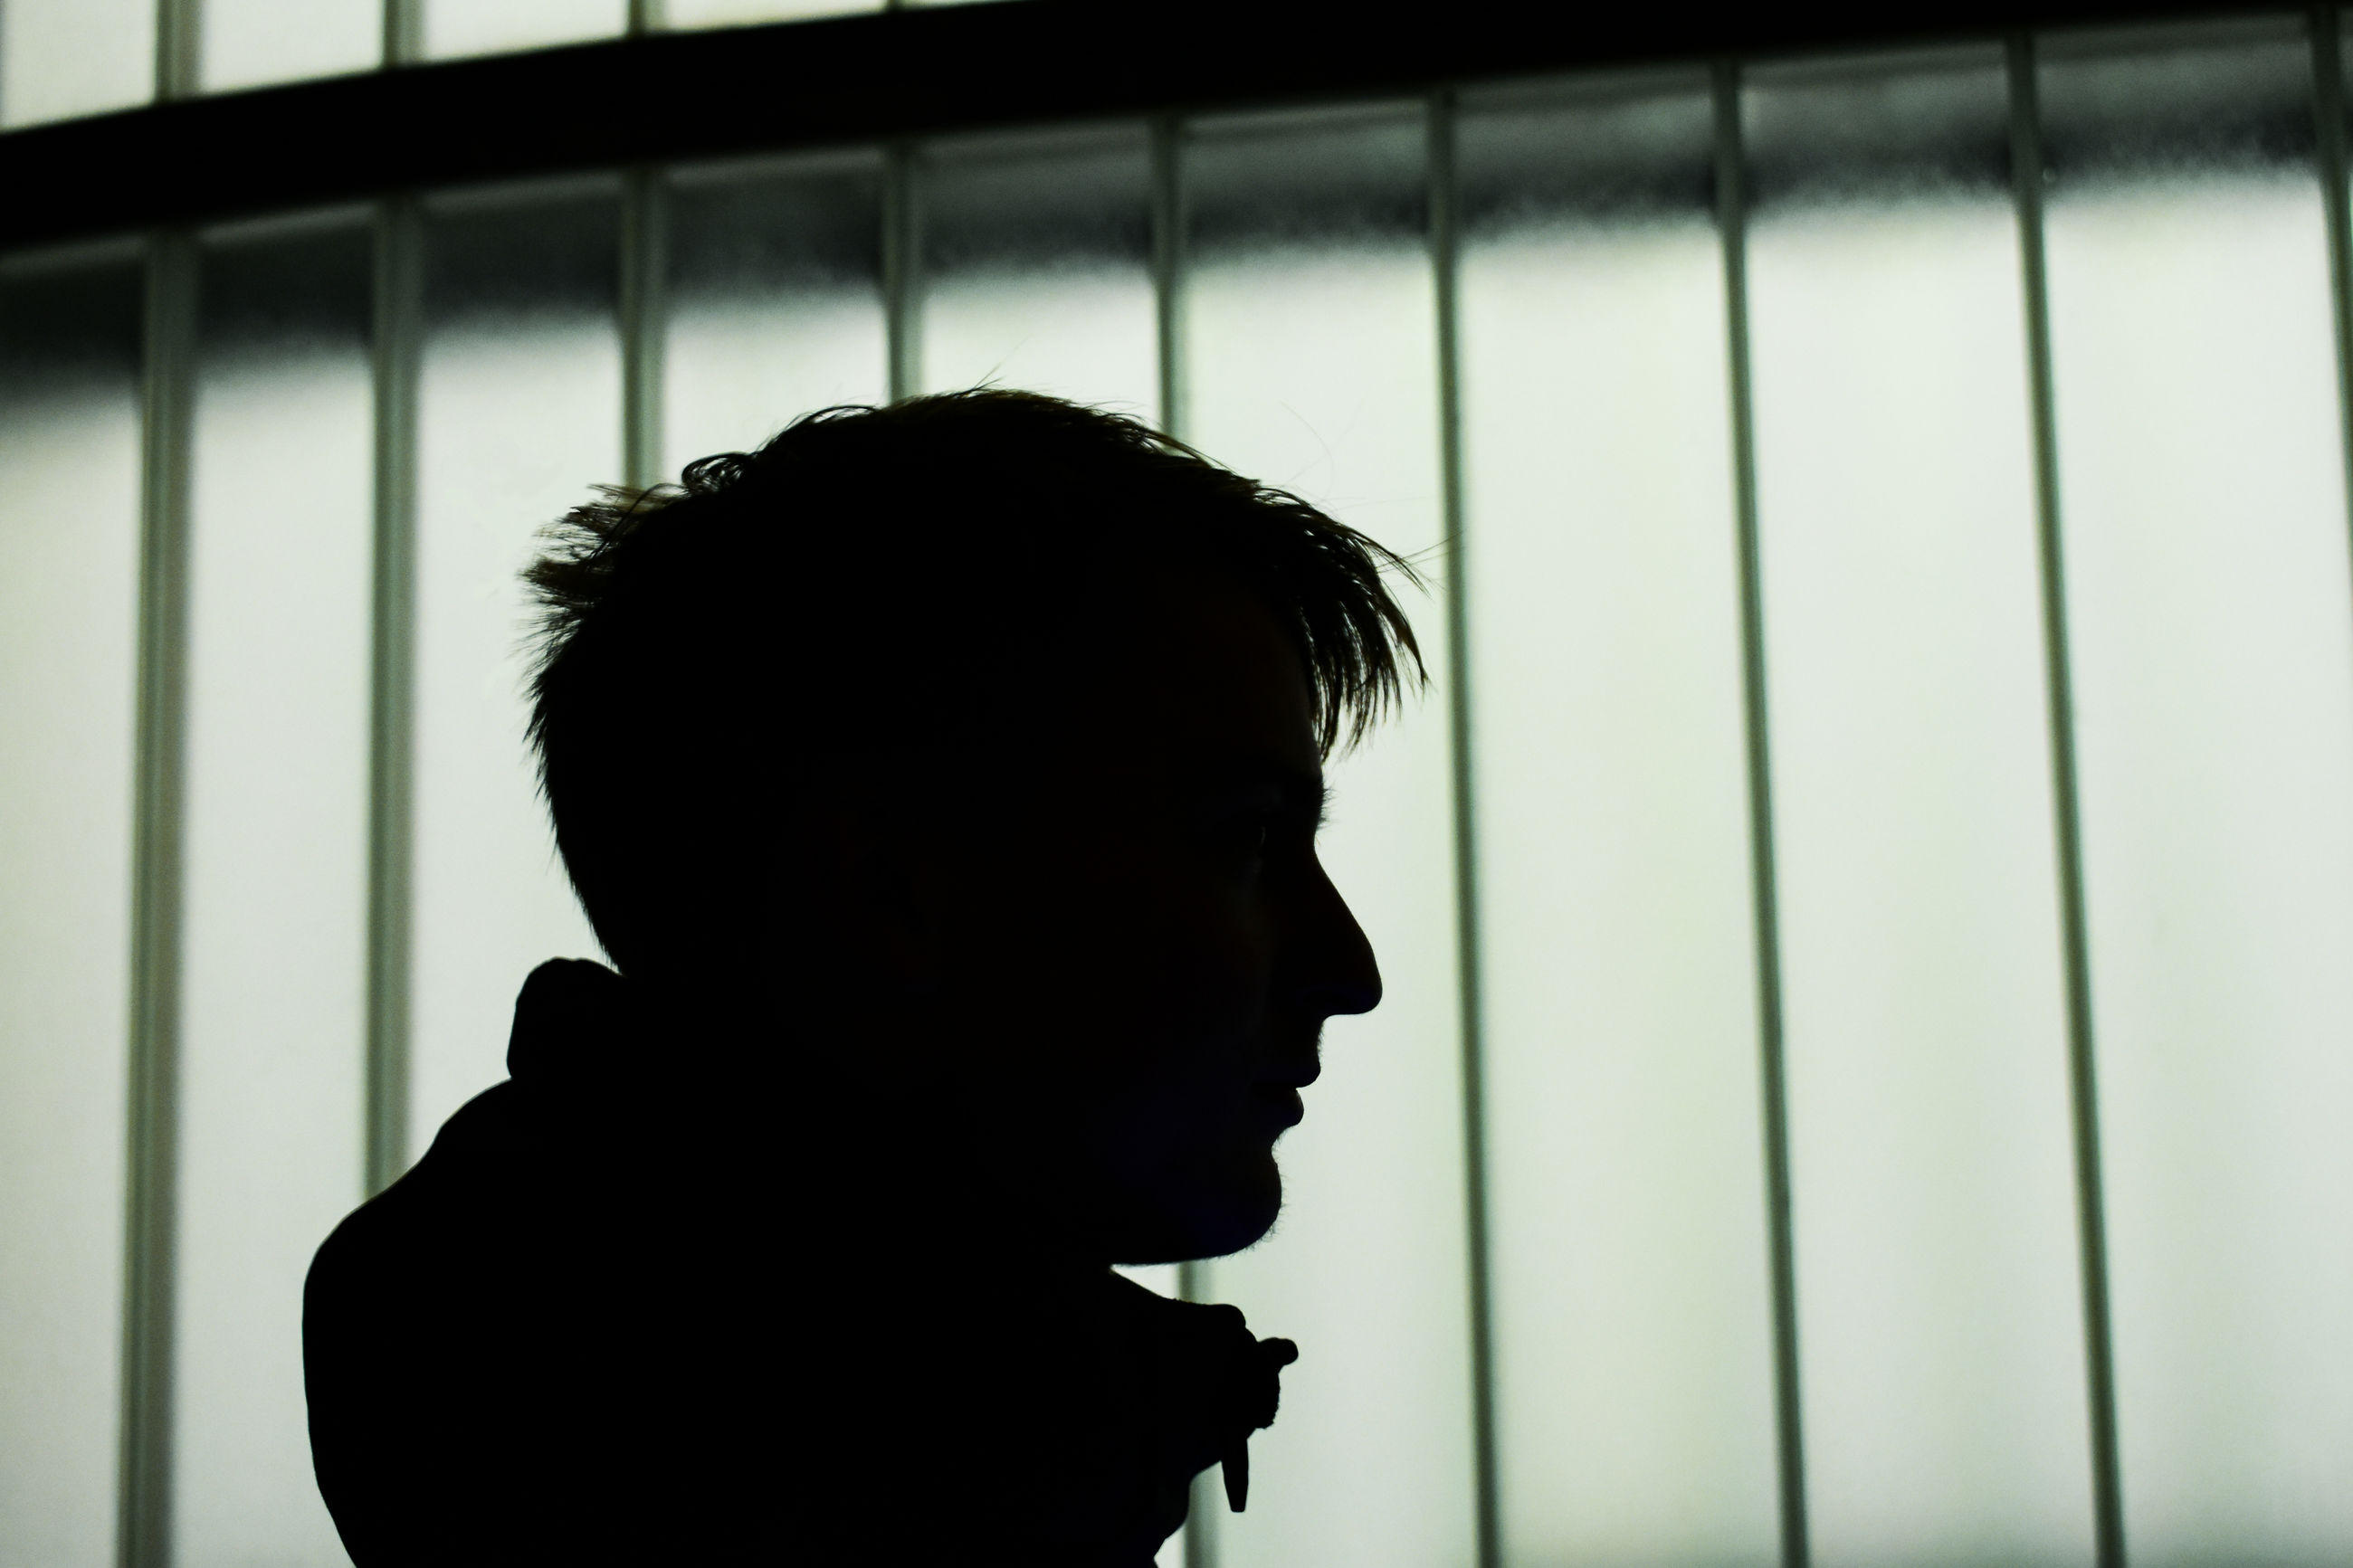 CLOSE-UP PORTRAIT OF SILHOUETTE MAN LOOKING AT WINDOW